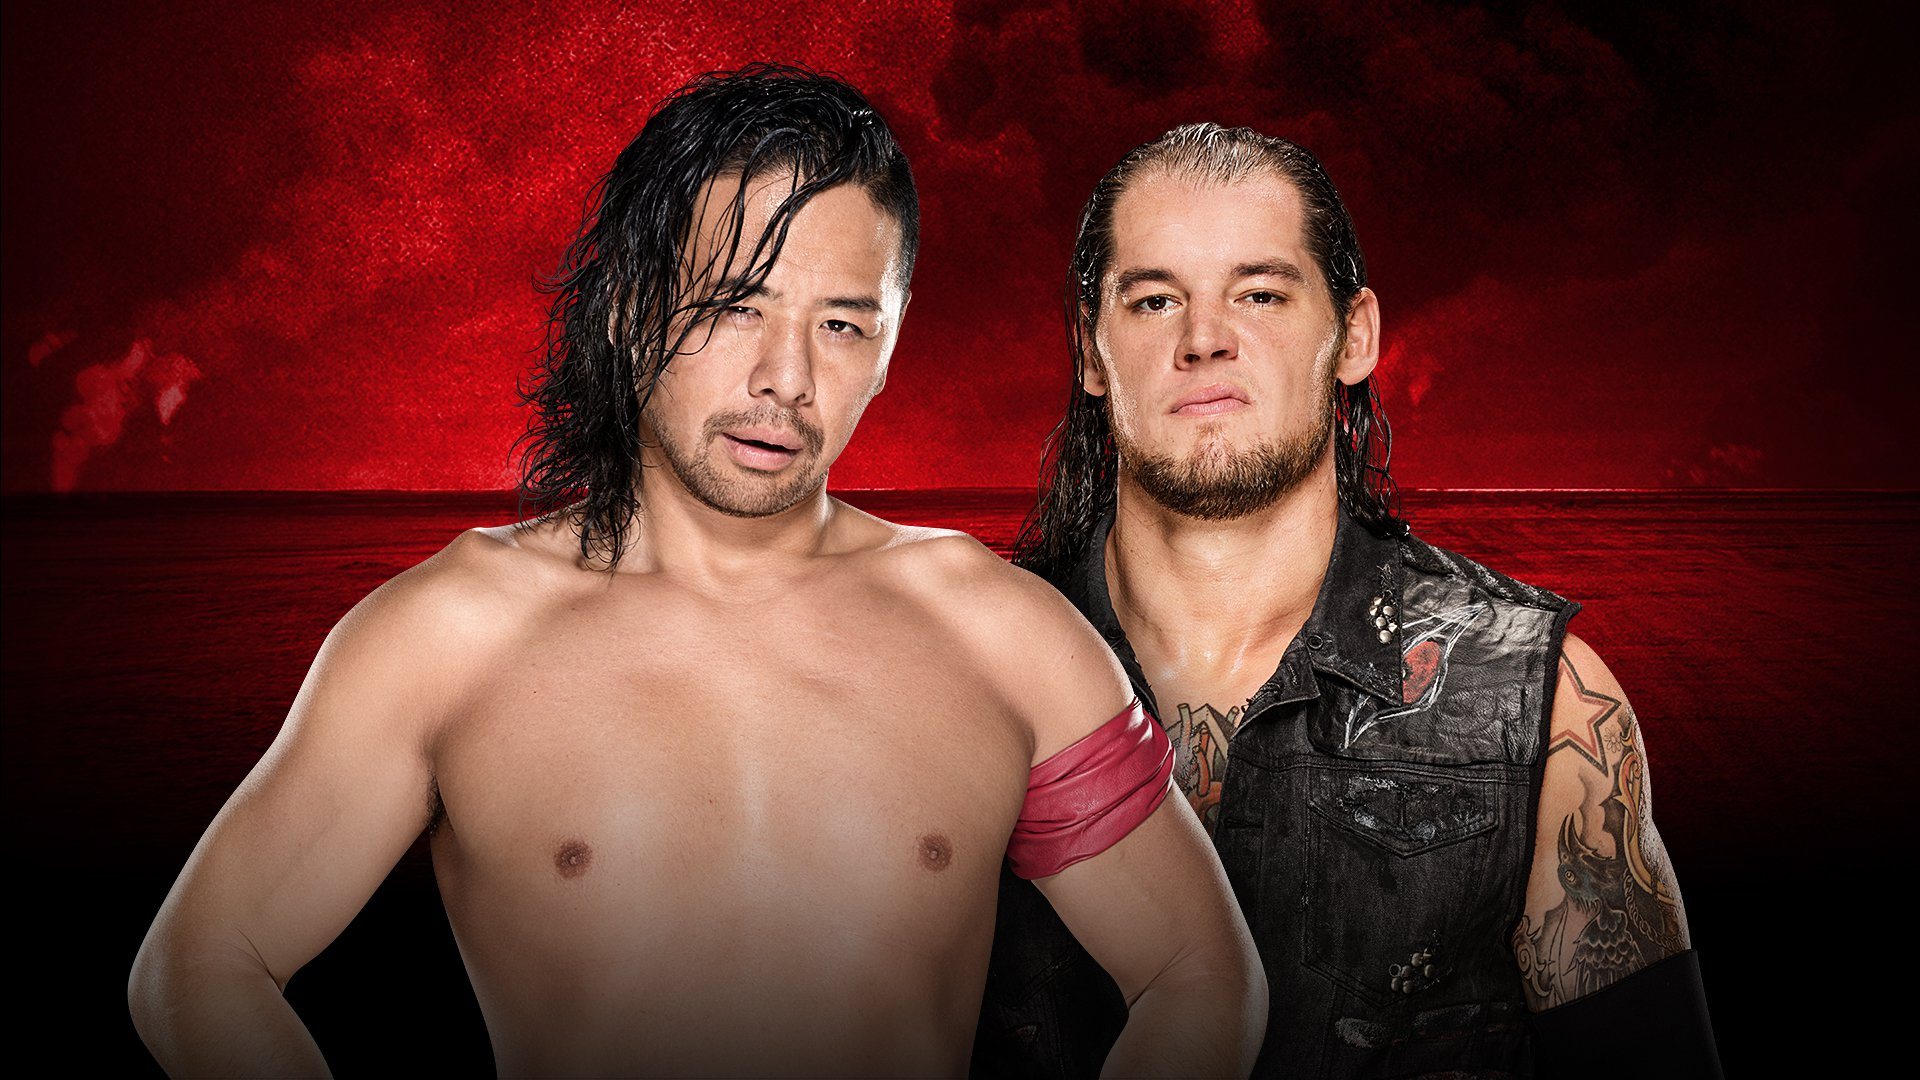 WWE Battleground 2017: Shinsuke Nakamura vs. Baron Corbin